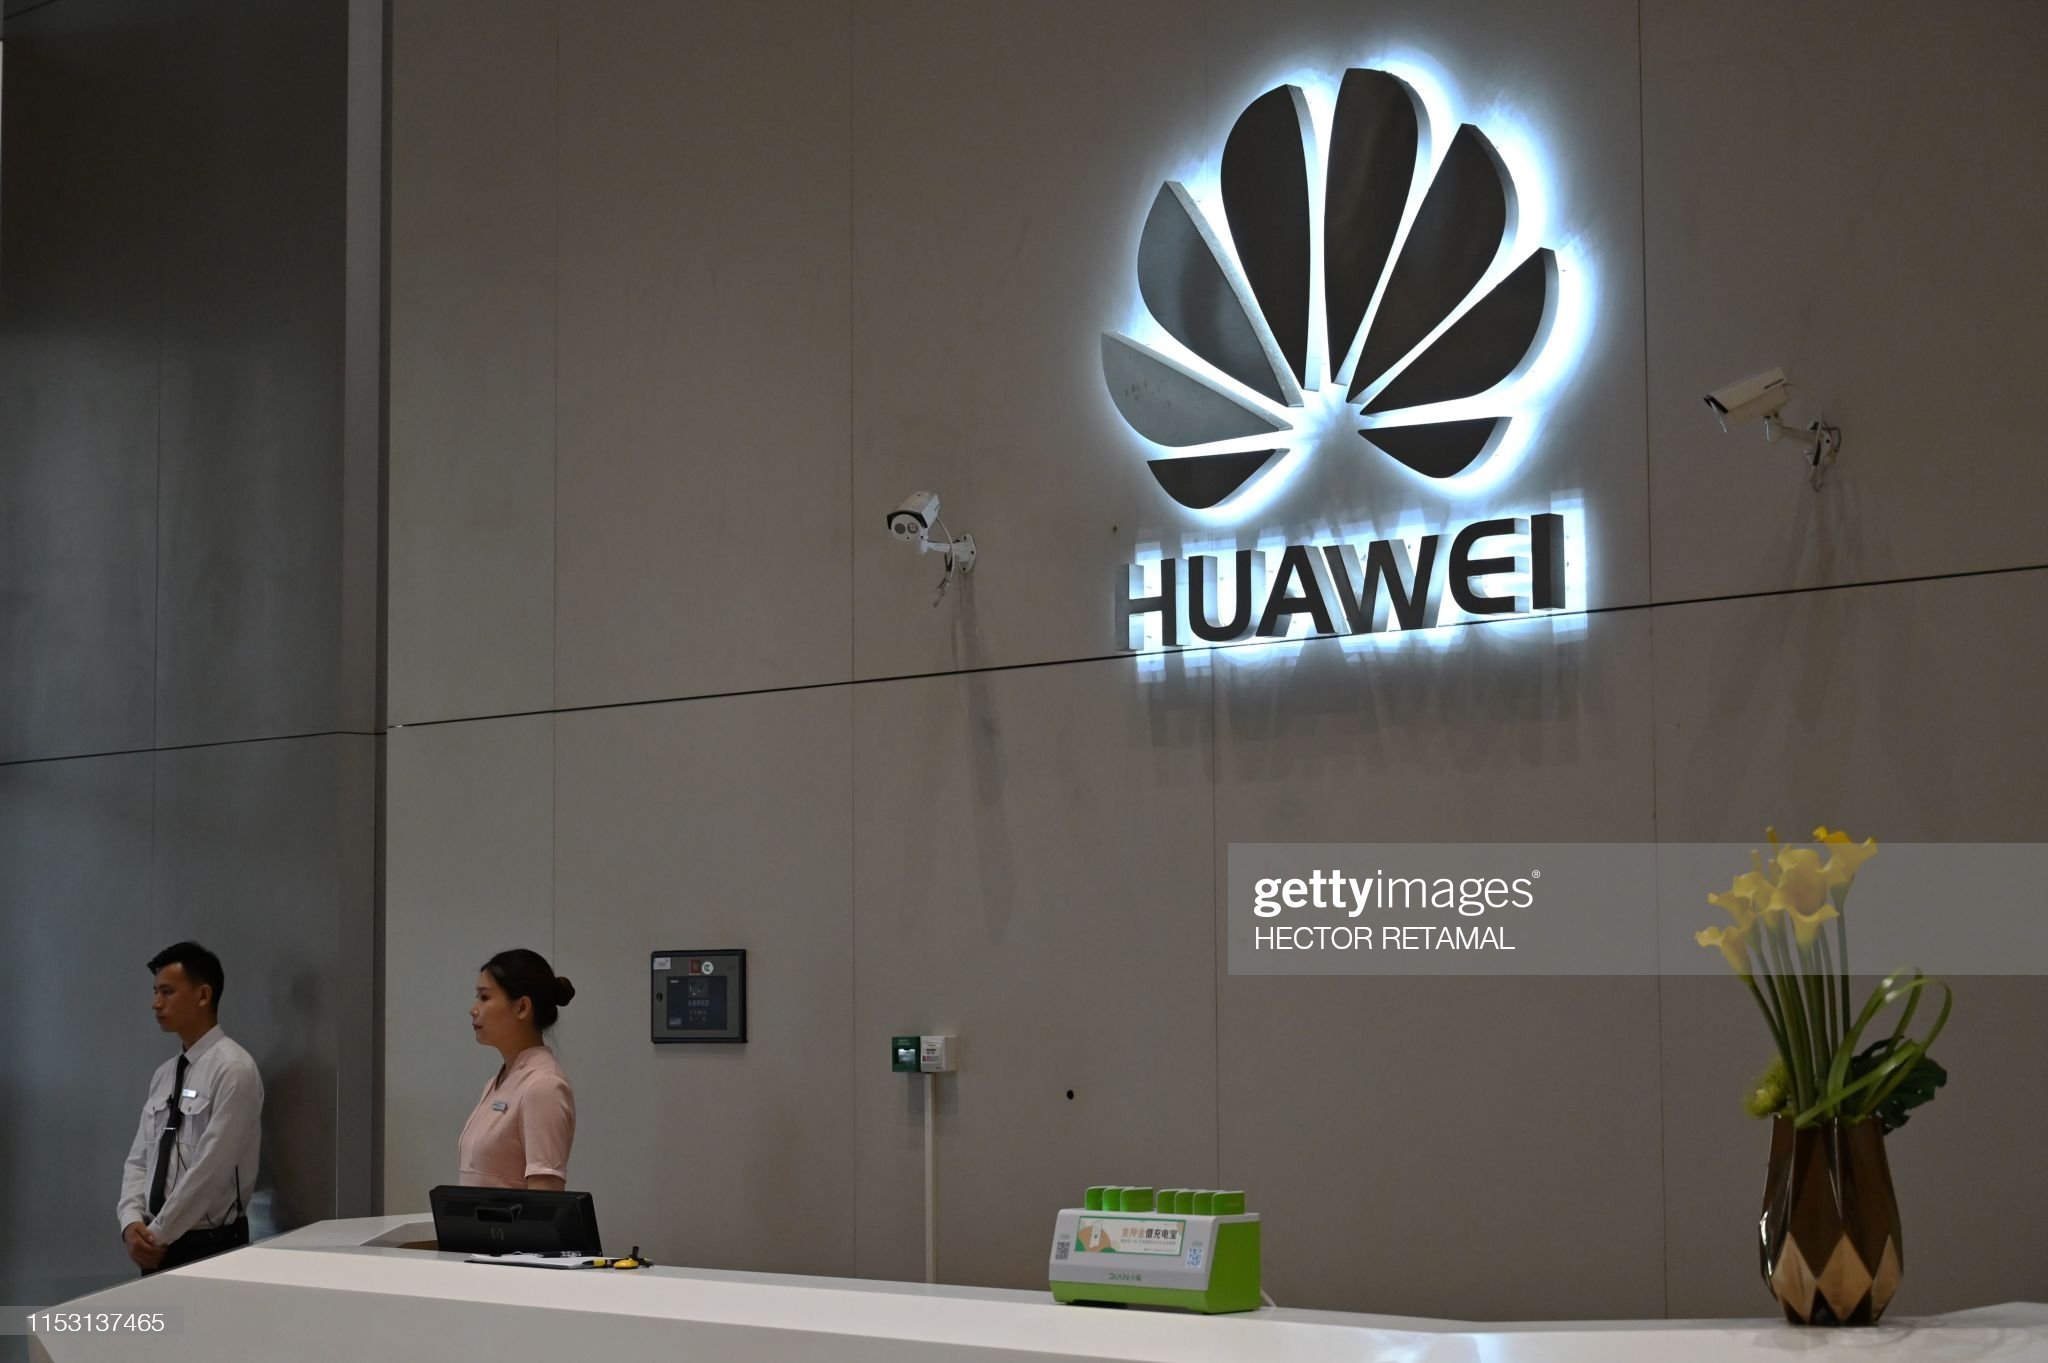 FILES-CHINA-US-HUAWEI-trade-diplomacy-wireless : News Photo